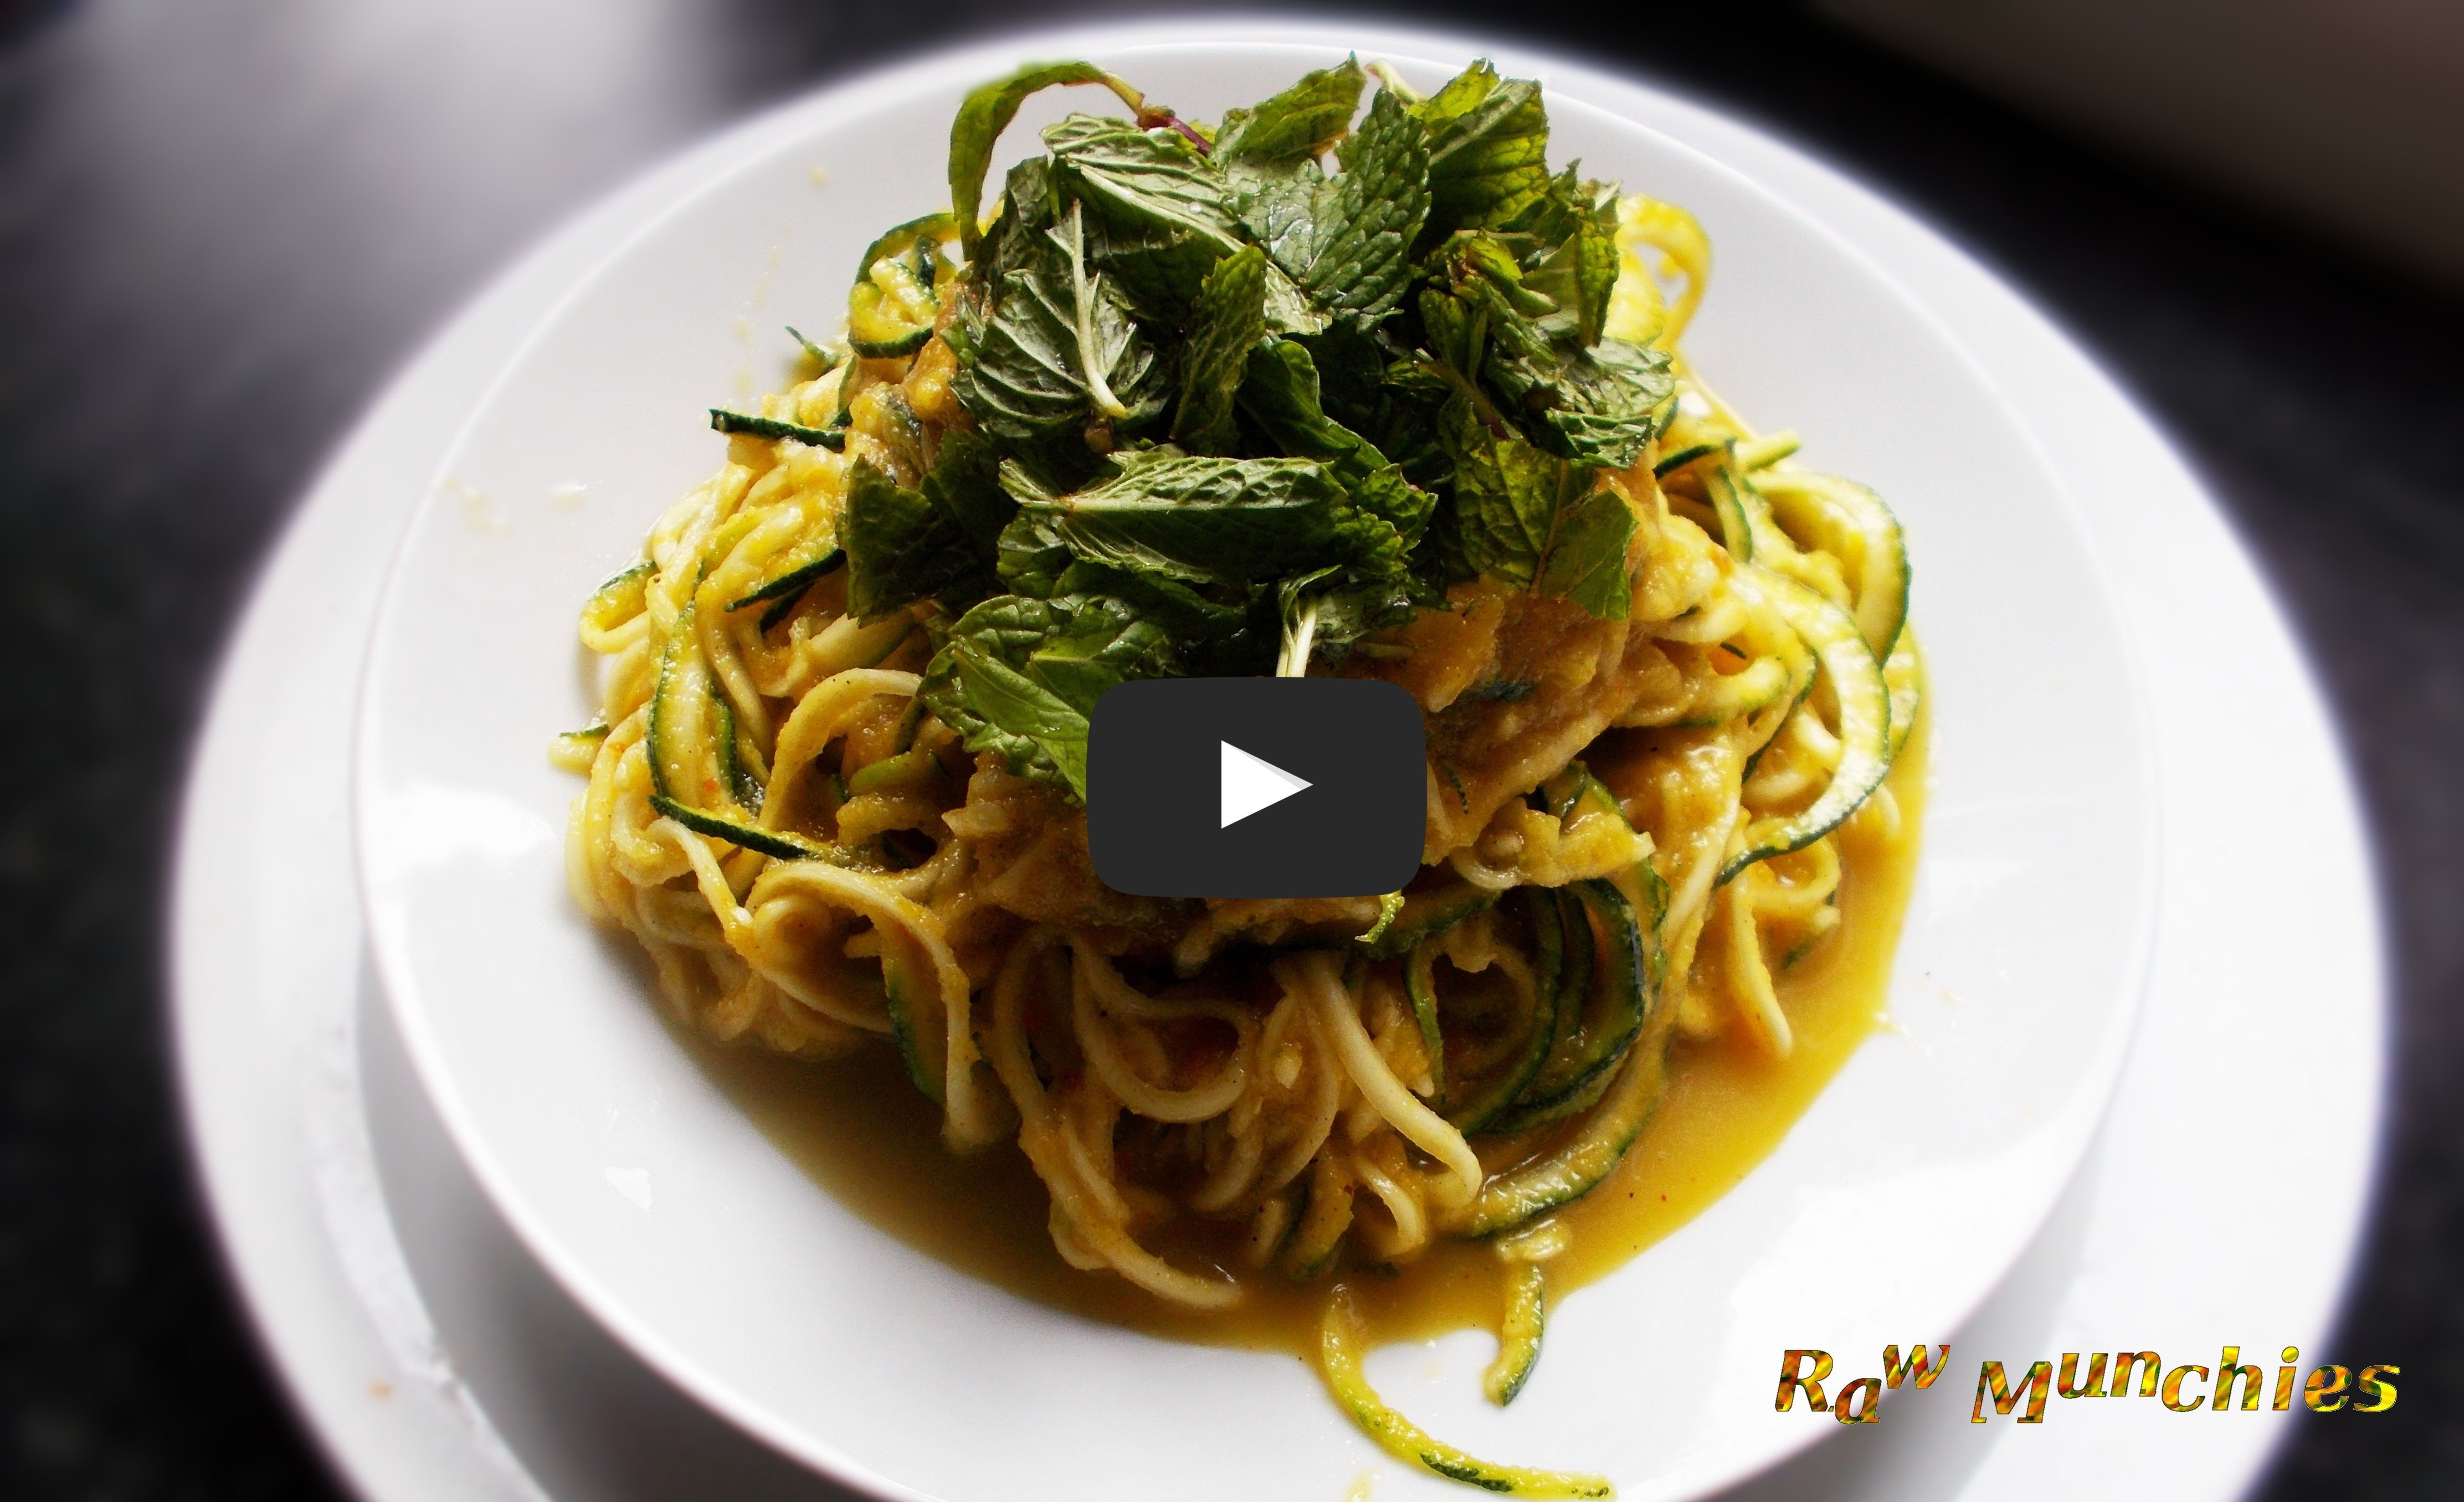 Raw vegan indian curried noodles rawmunchies raw vegan raw vegan indian curried noodles rawmunchies raw vegan recipes video httpsyoutubewatchv9ets2wfi5qq more here httpift2ugzns5 forumfinder Choice Image